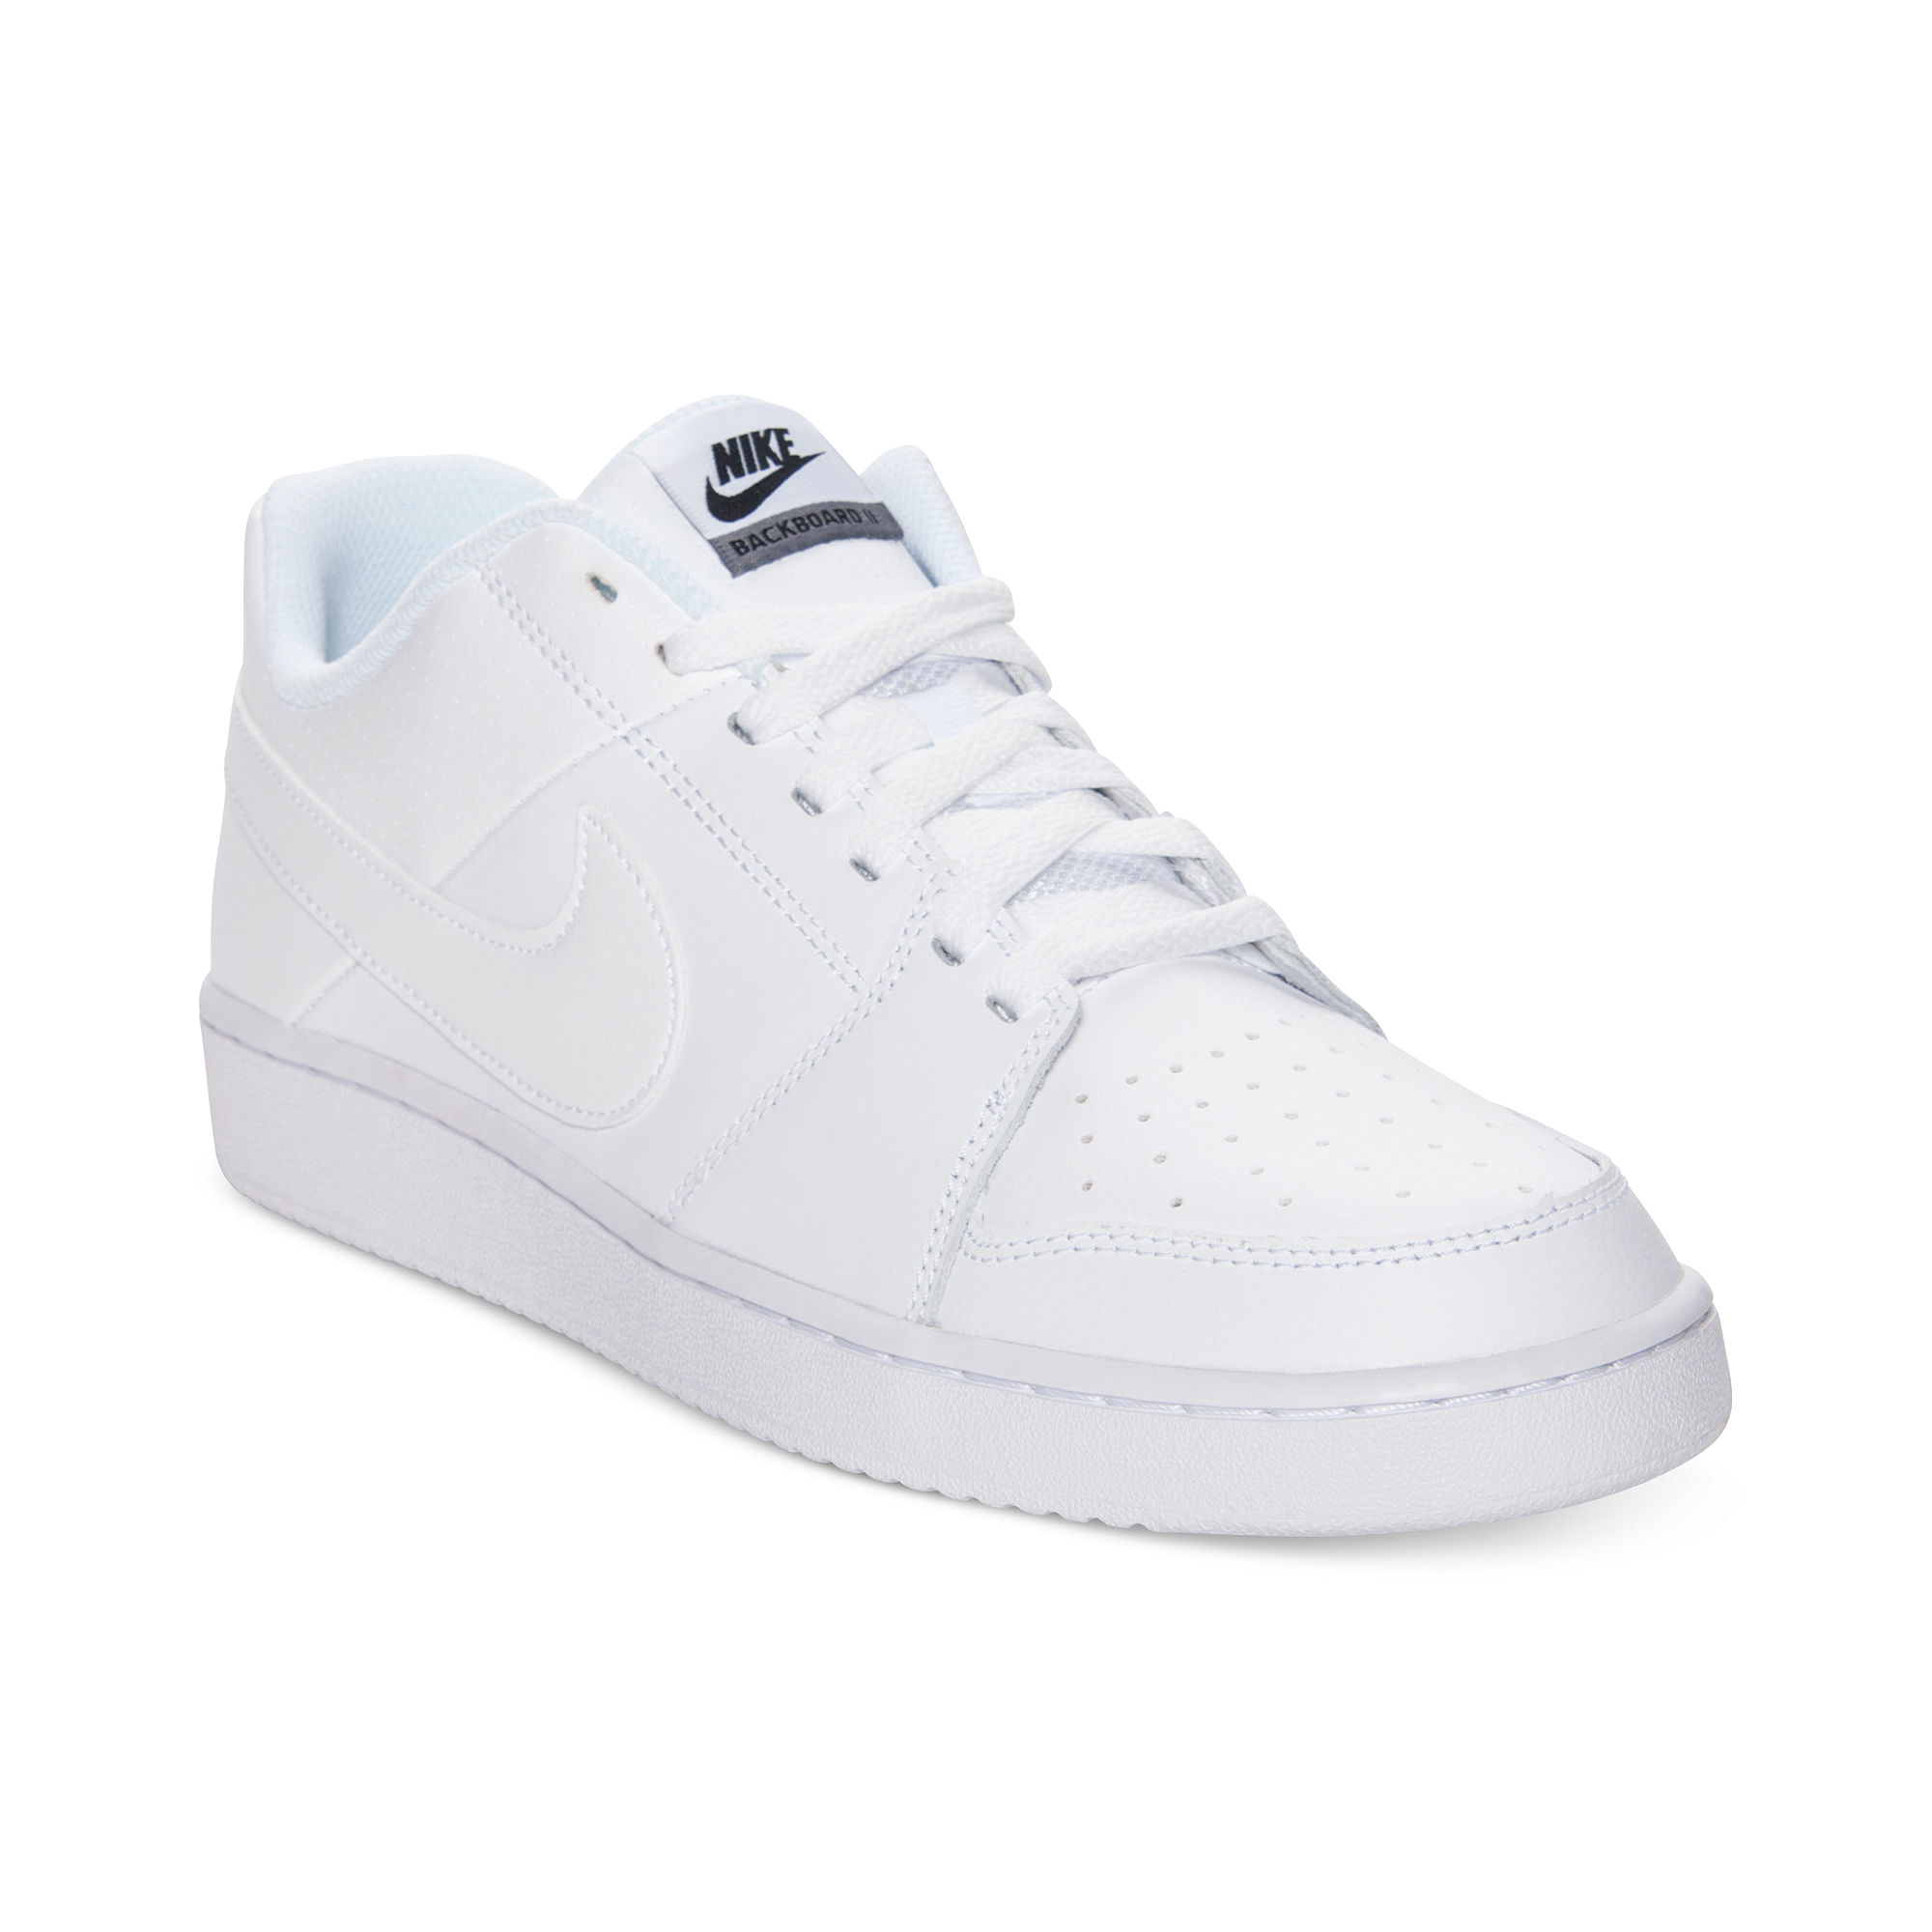 Model  Shoes  Women  Women39s Nike Court Tradition Casual Shoe White